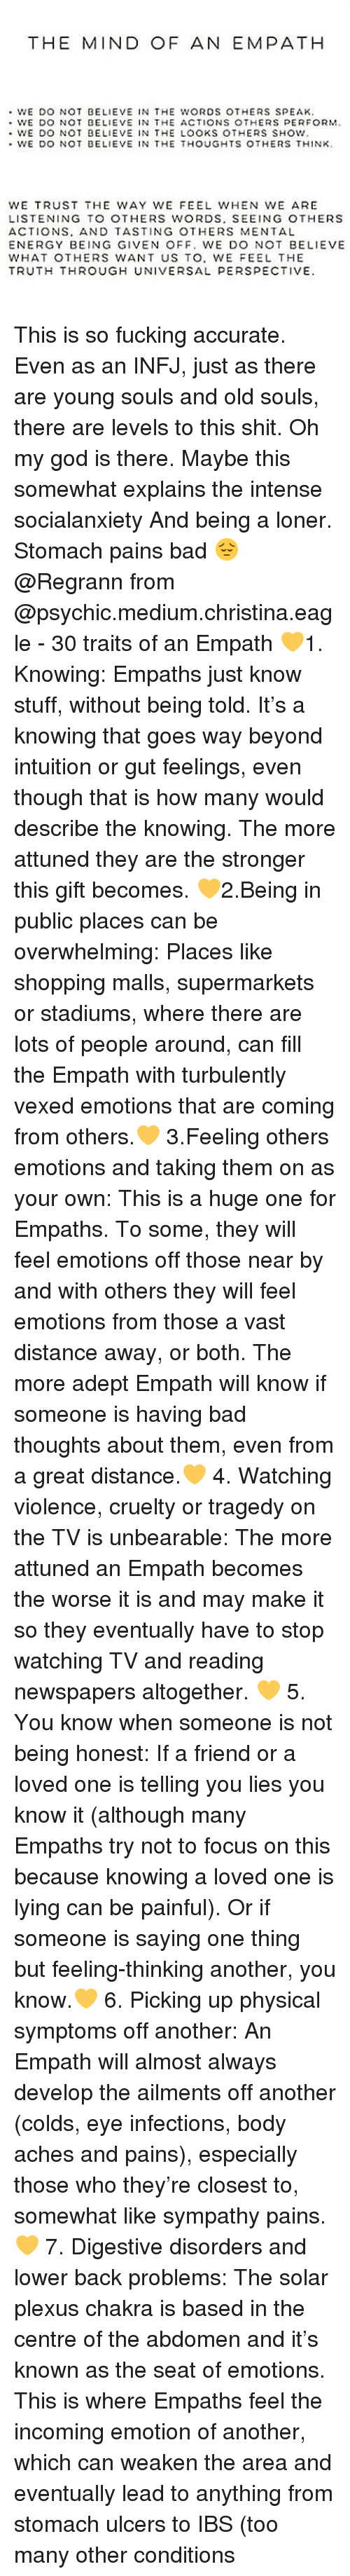 Funny Empath Memes of 2017 on me.me